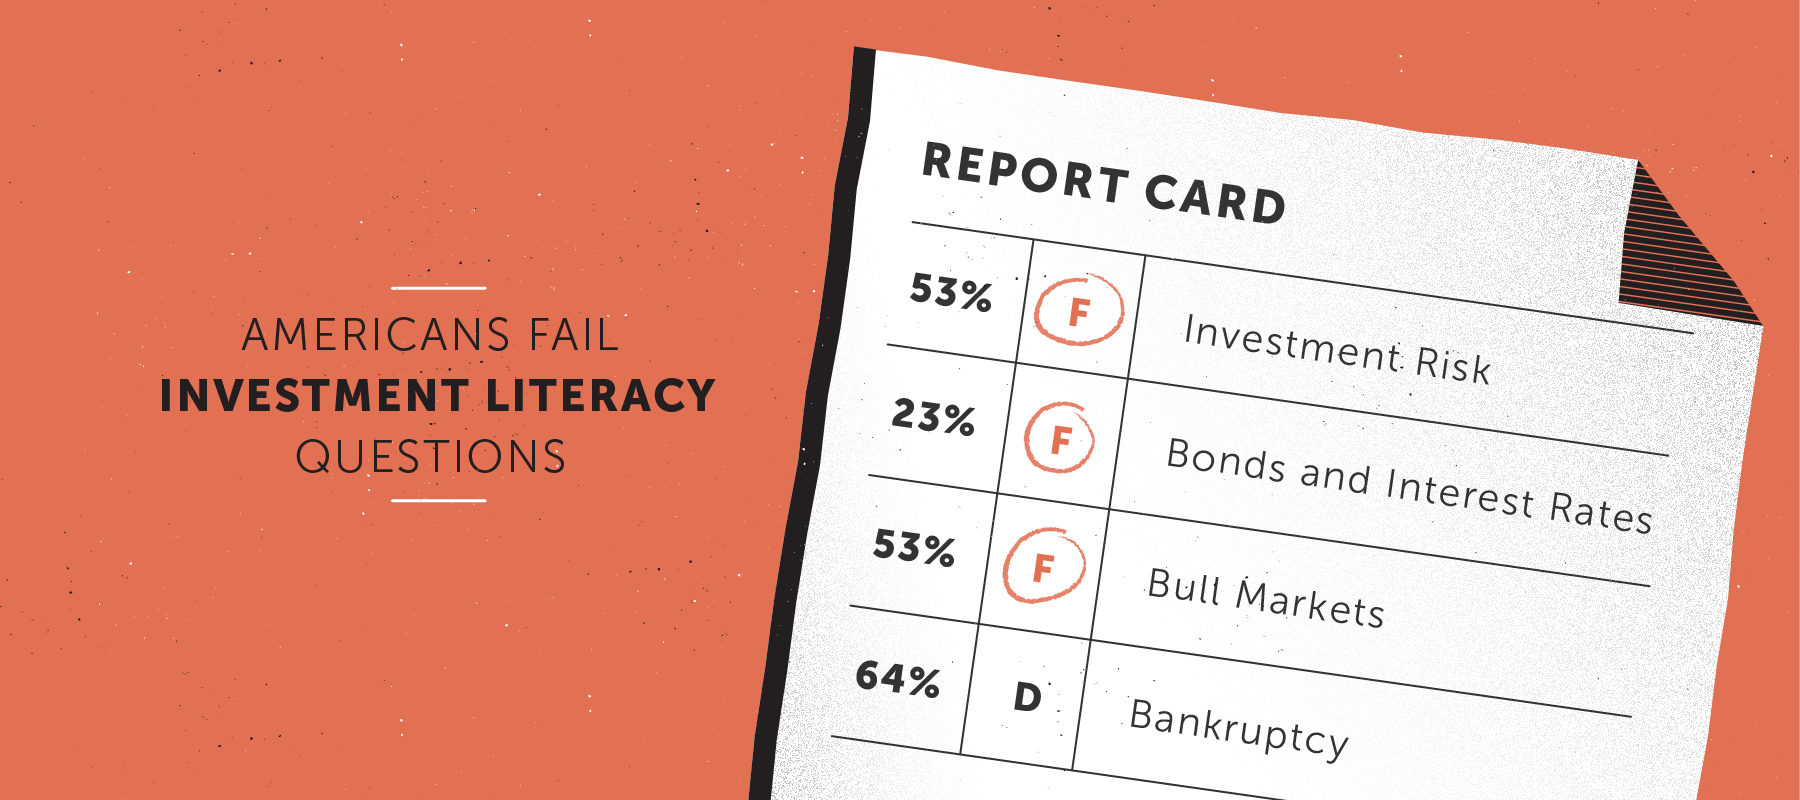 01-americans-fail-investment-literacy